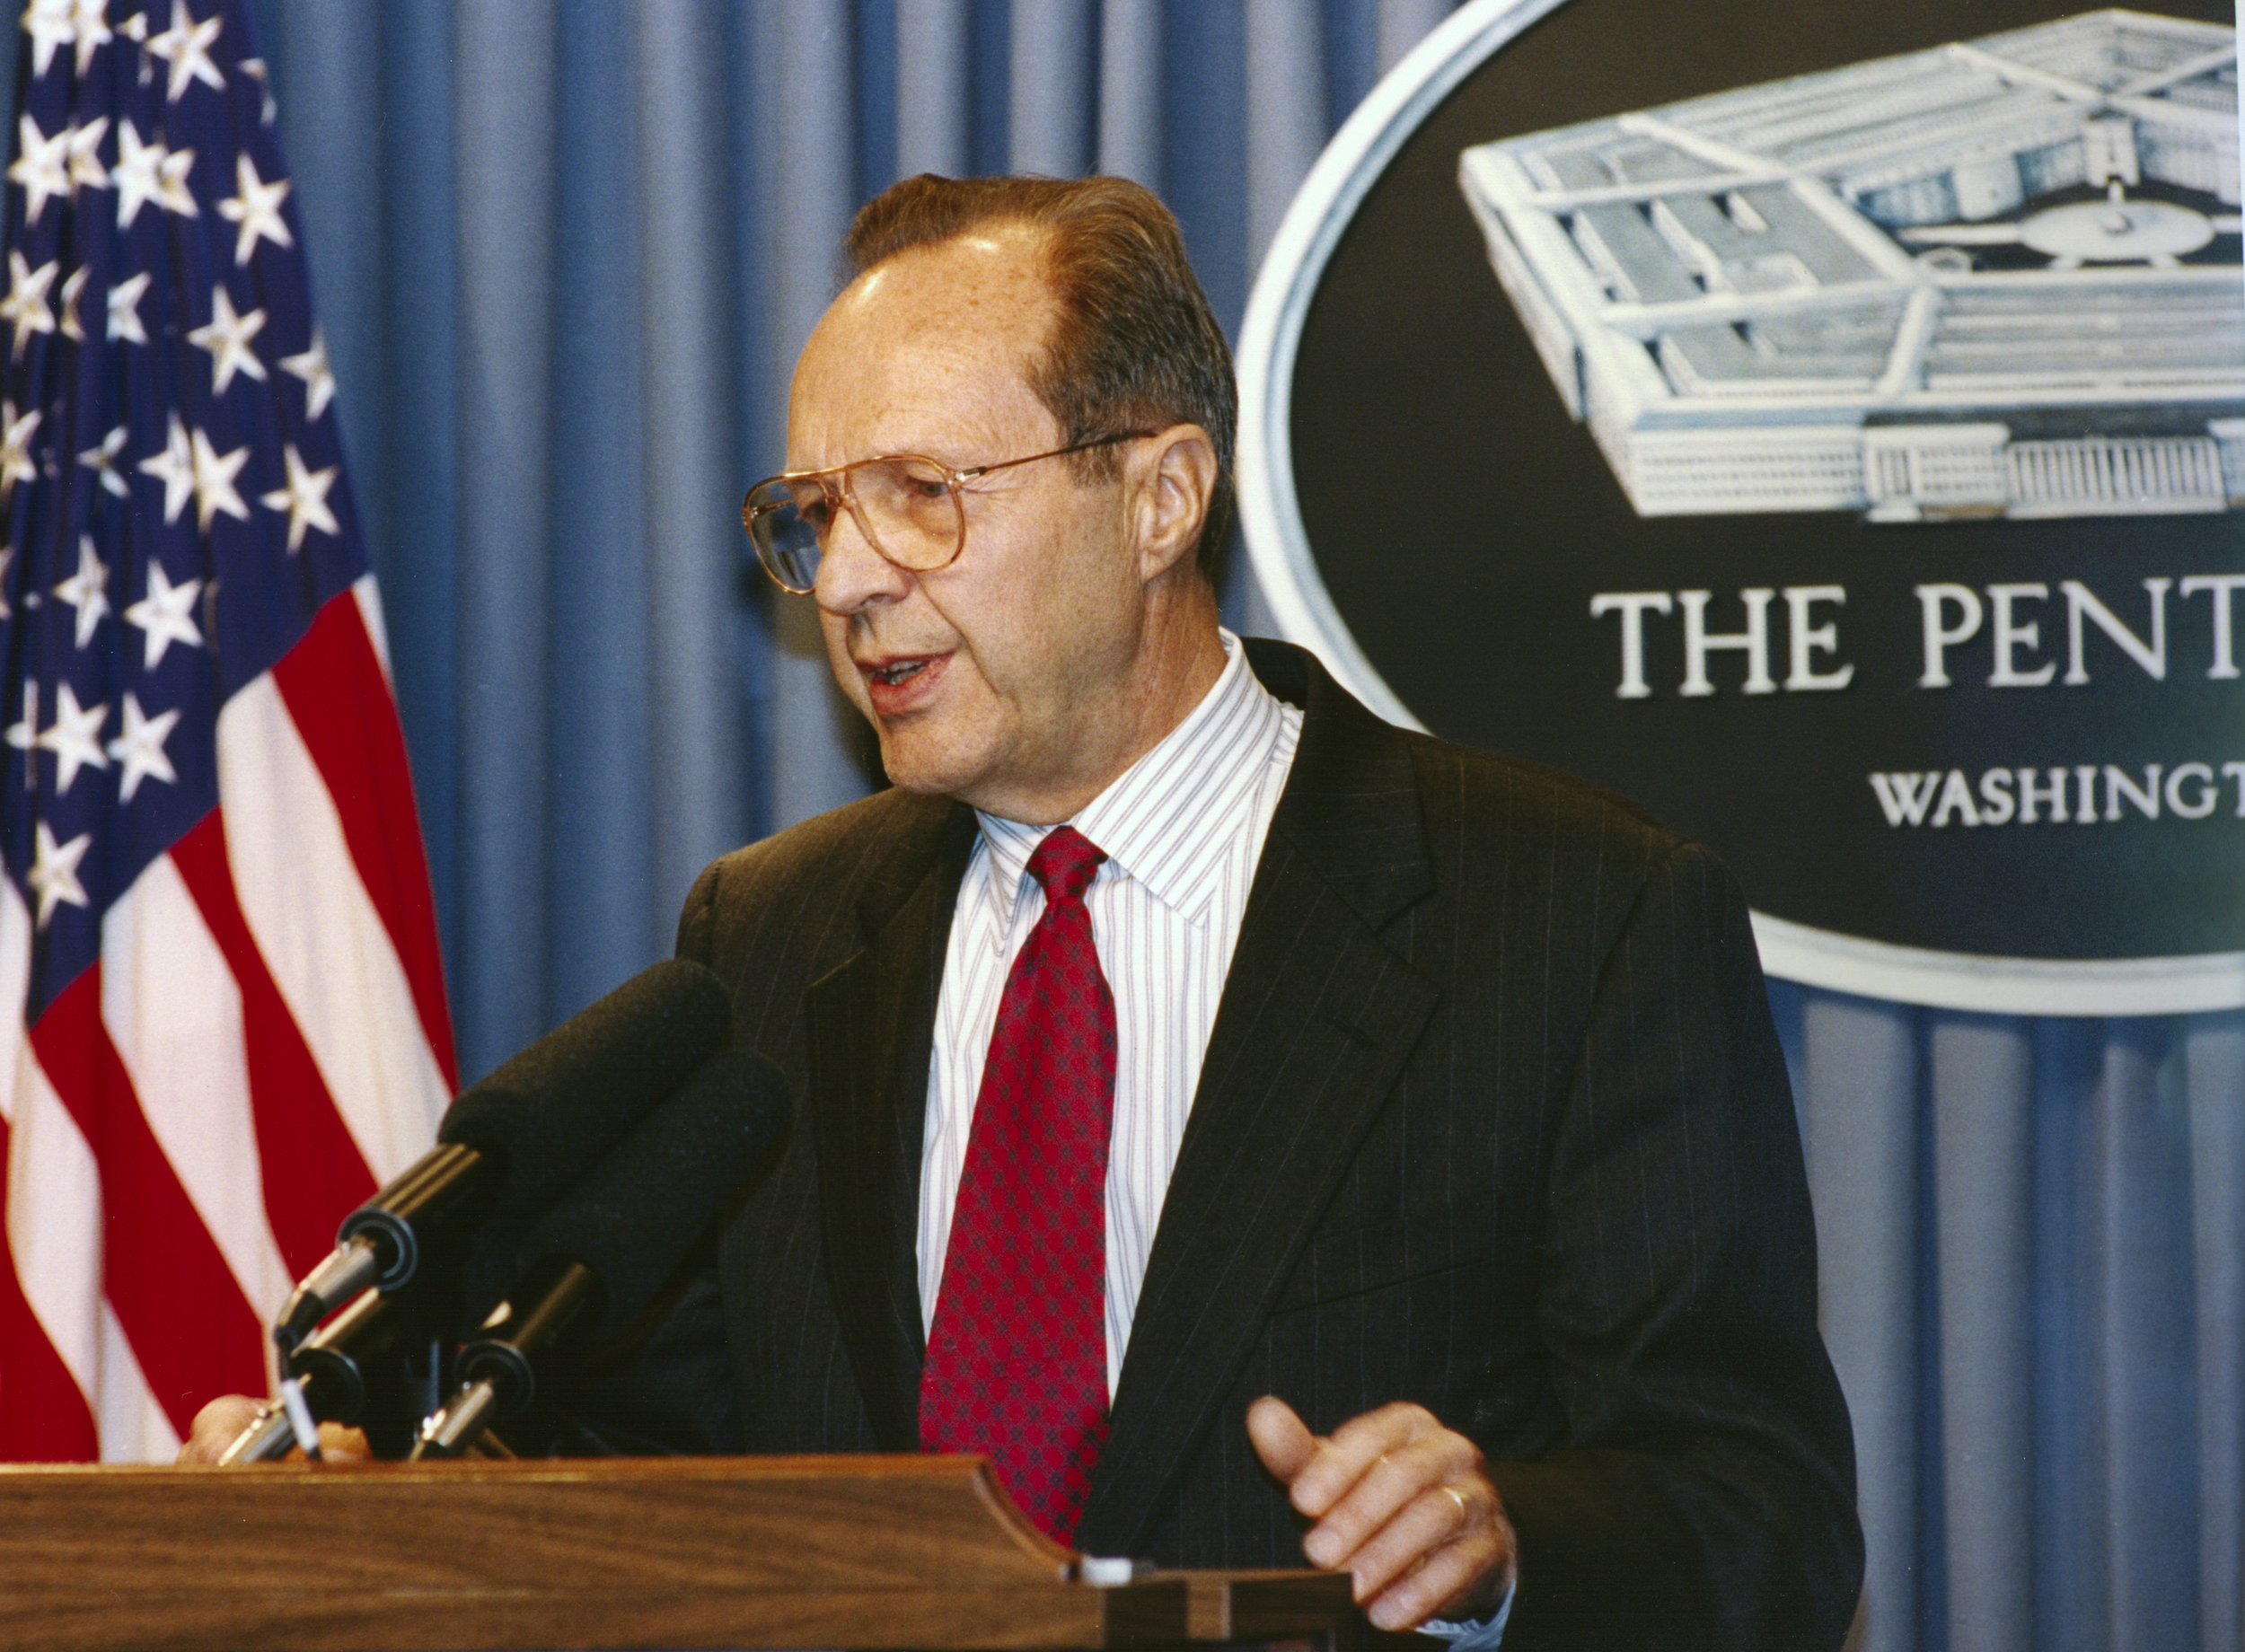 William J. Perry served as the 19th U.S. Secretary of Defense